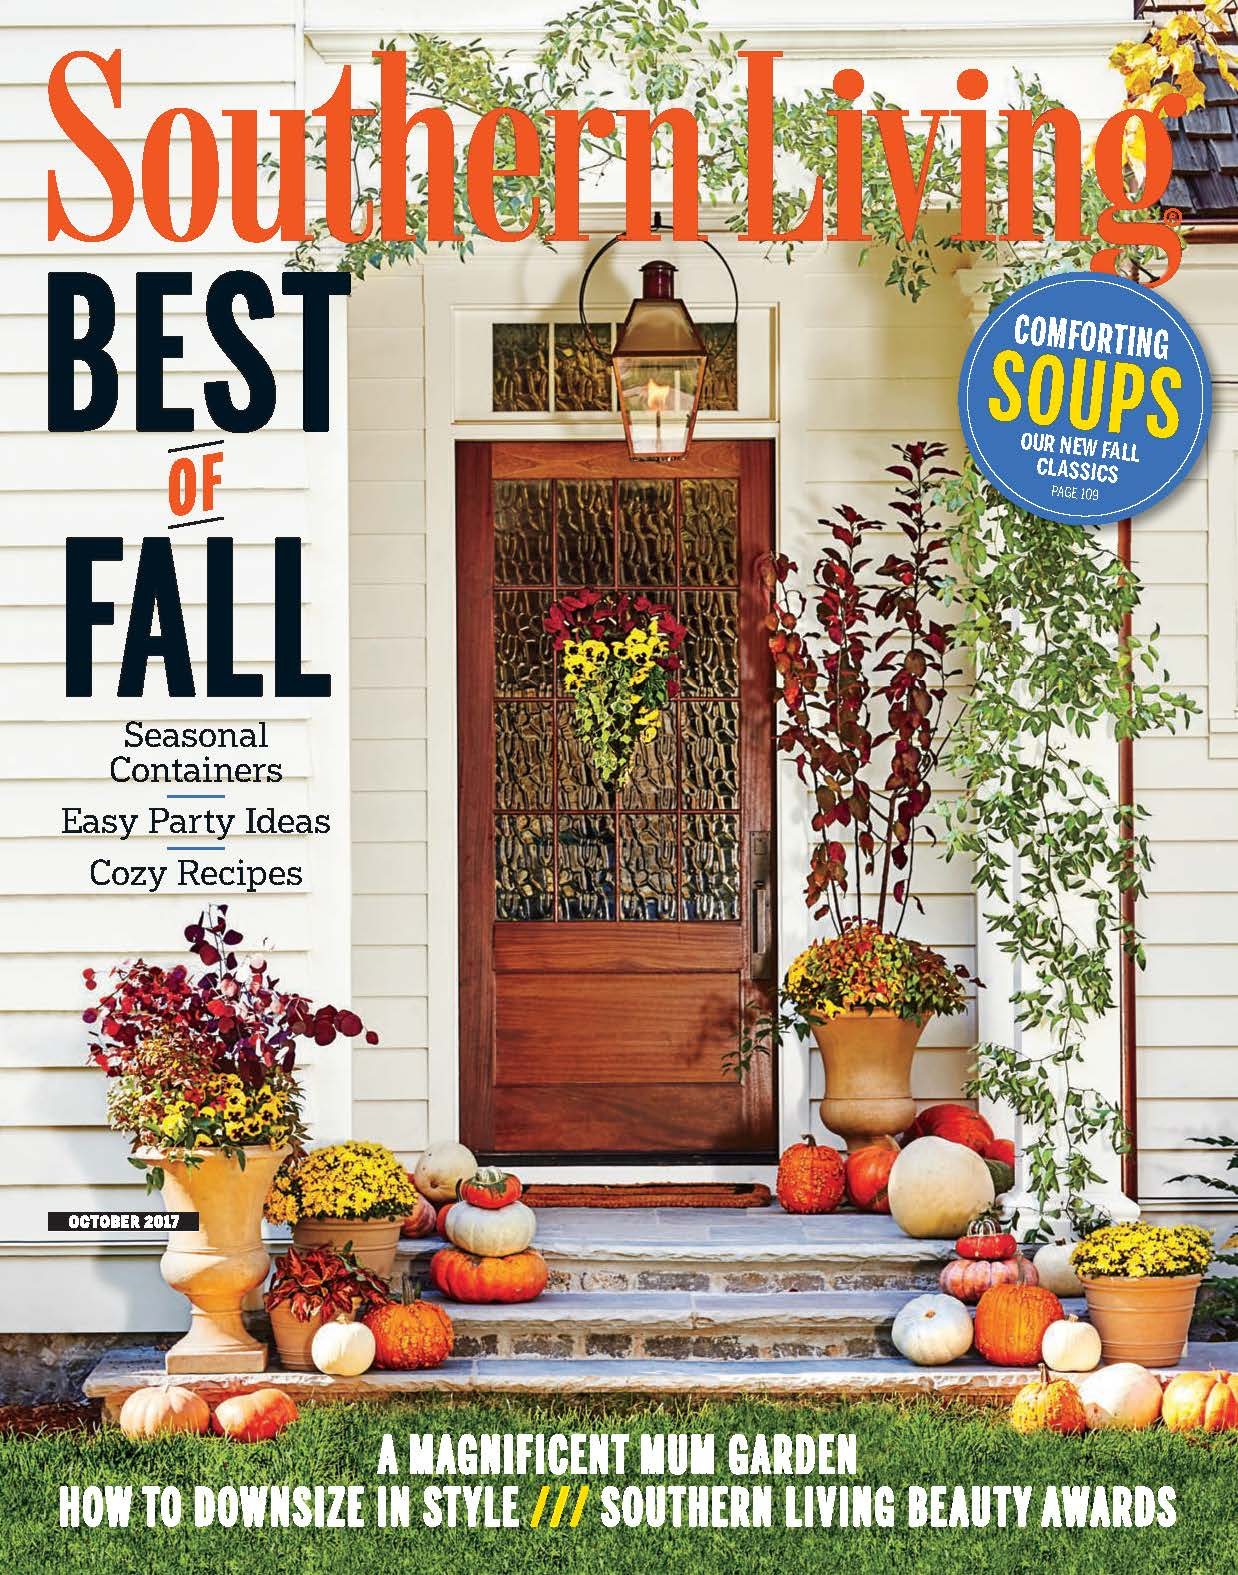 Southern Living, October 2017